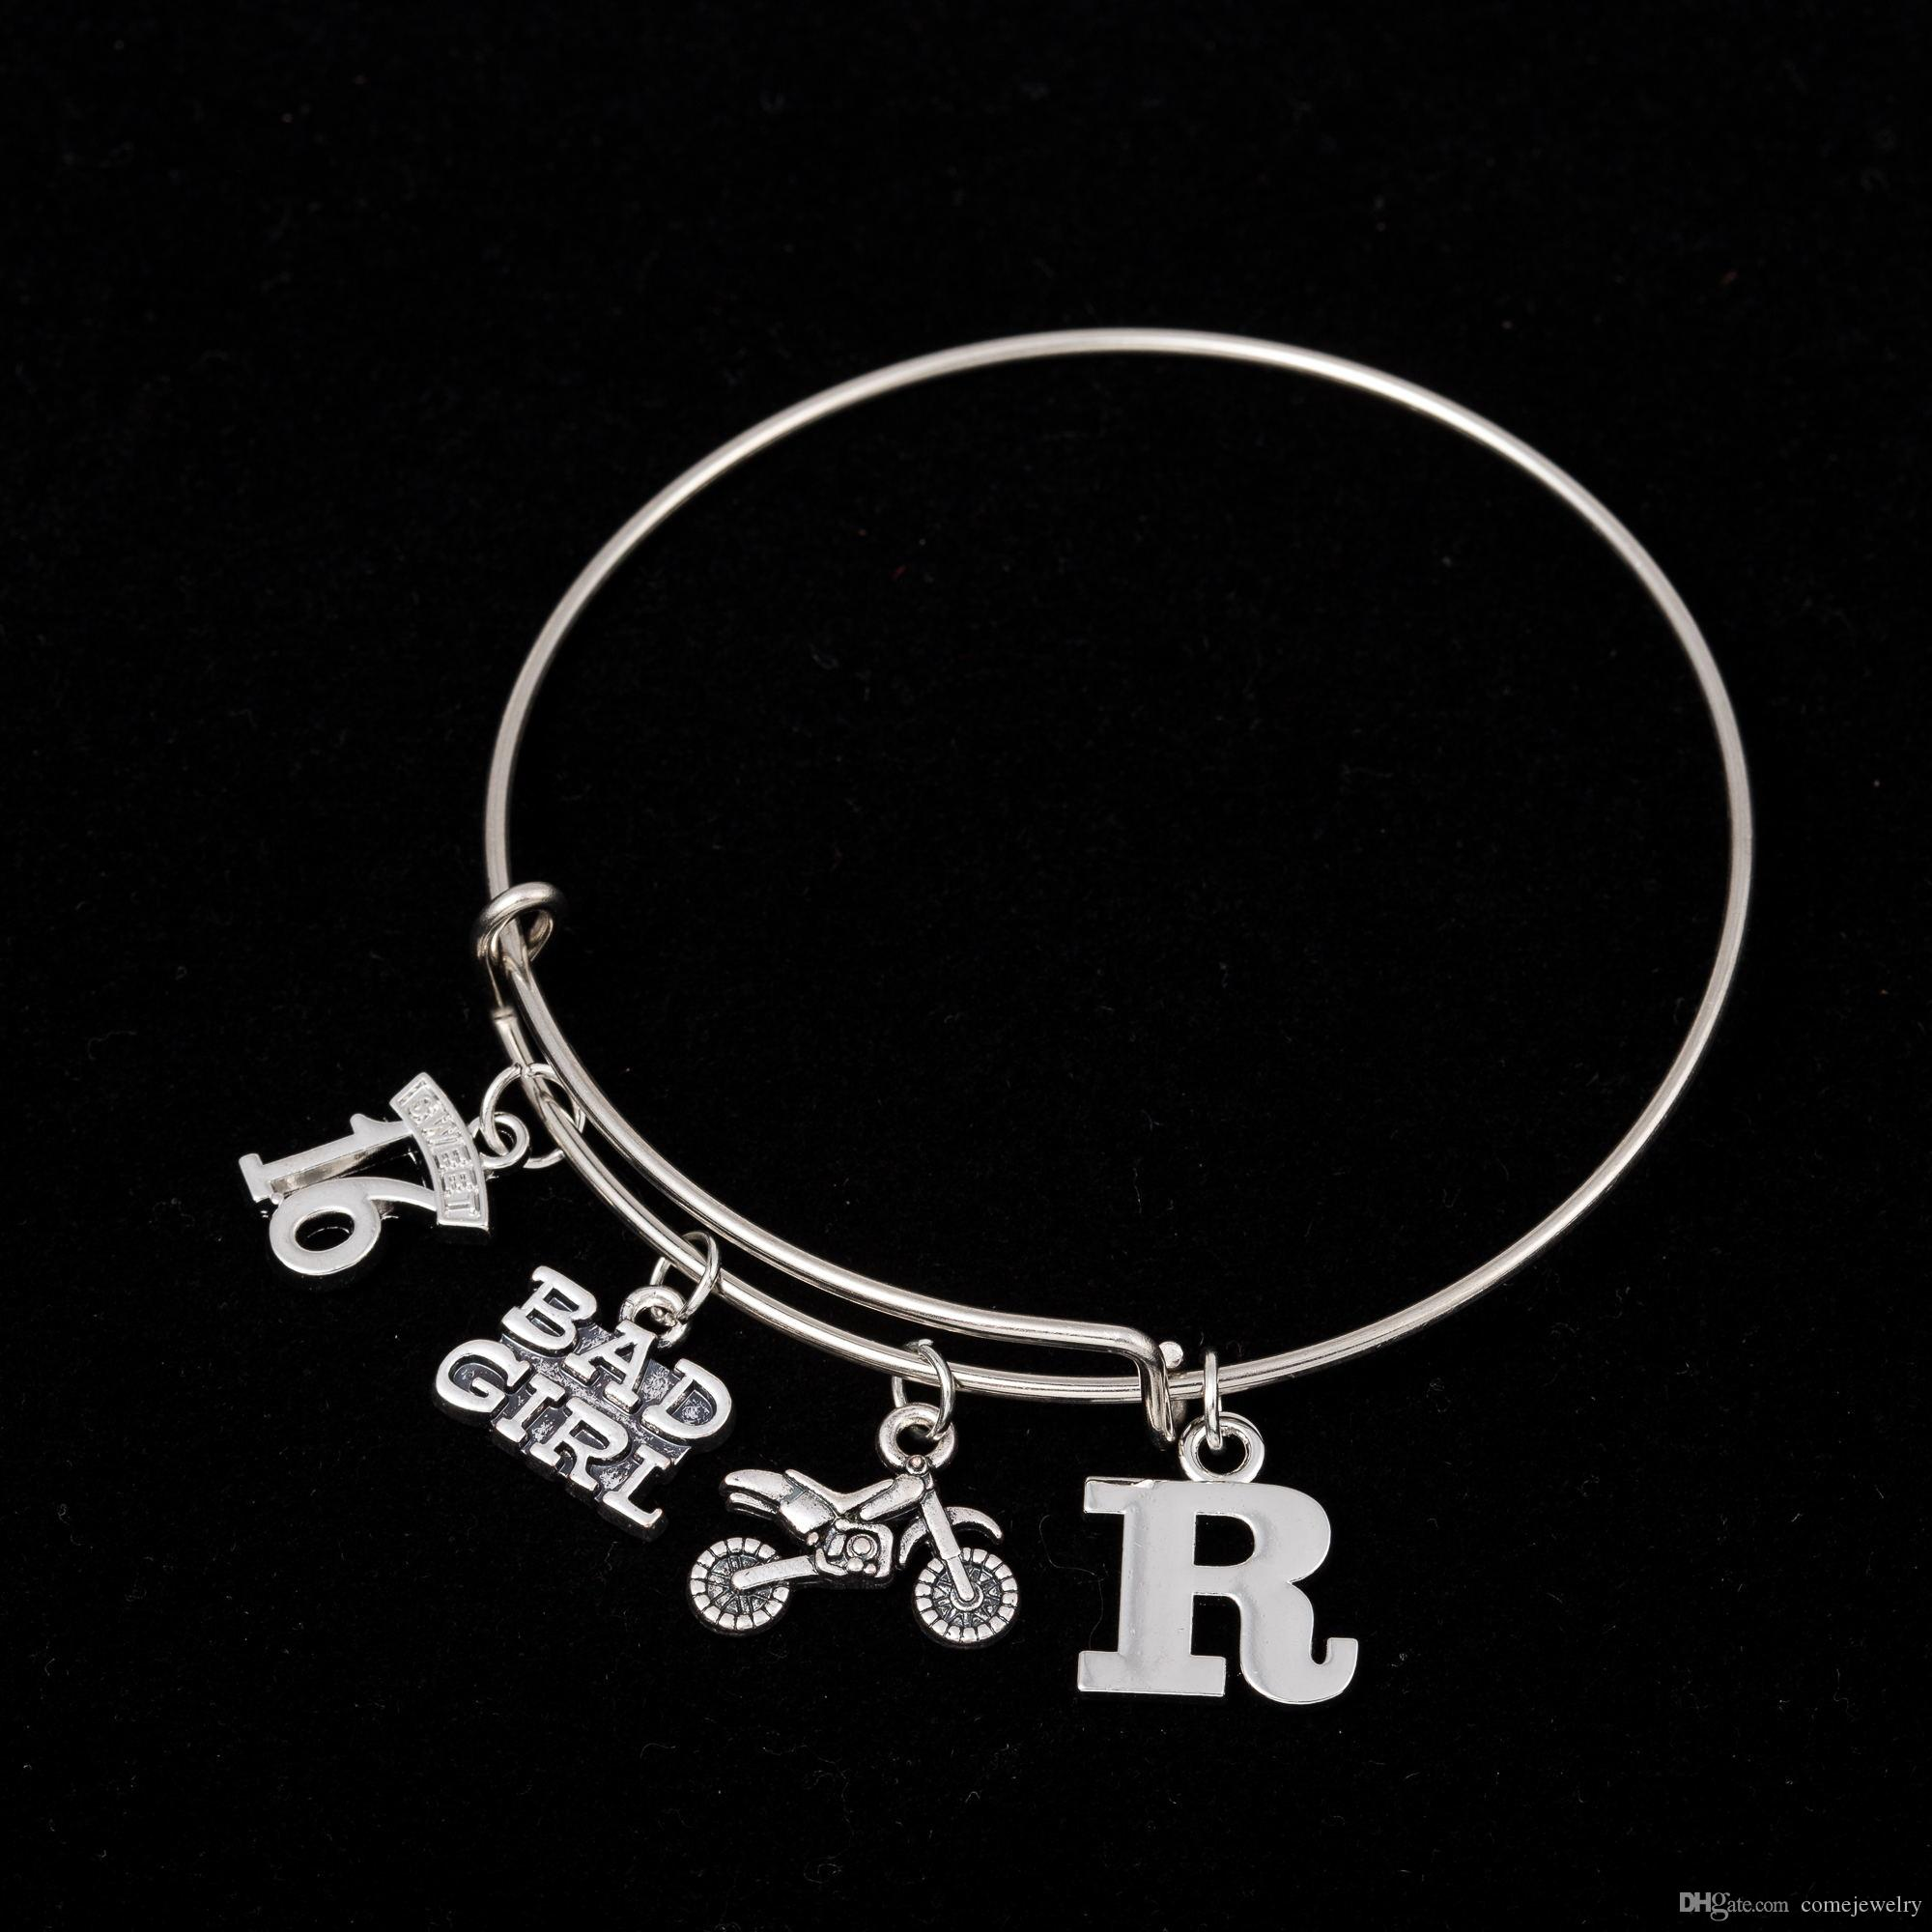 stainless bracelet gabriel charm silver sterling products with bangle steel bangles silverstainless bracelets